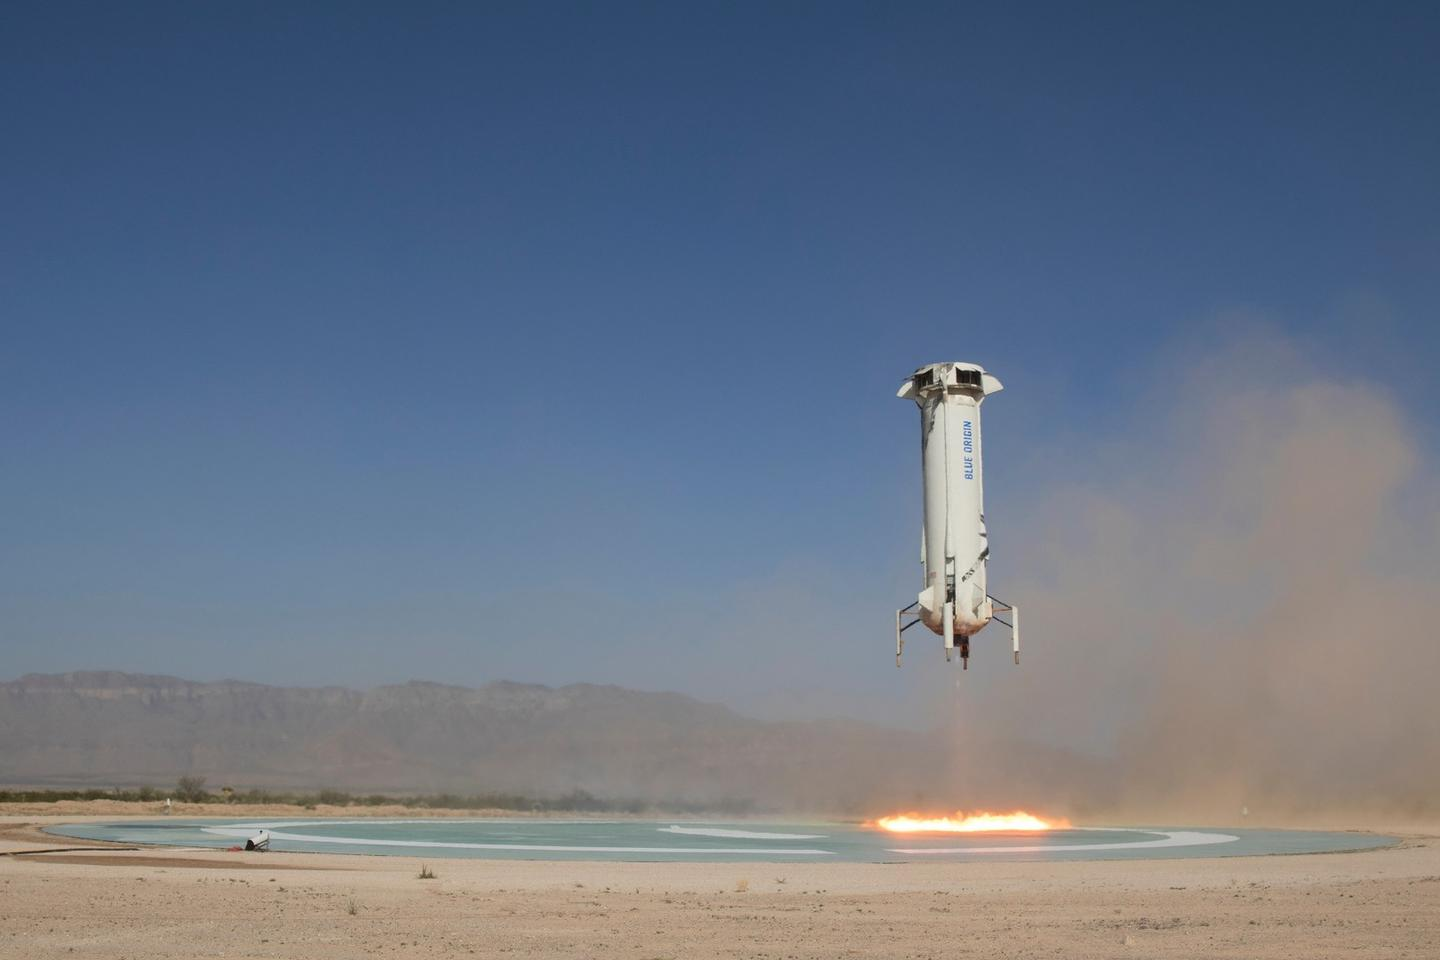 Today's launch was the ninth New Shephard suborbital mission